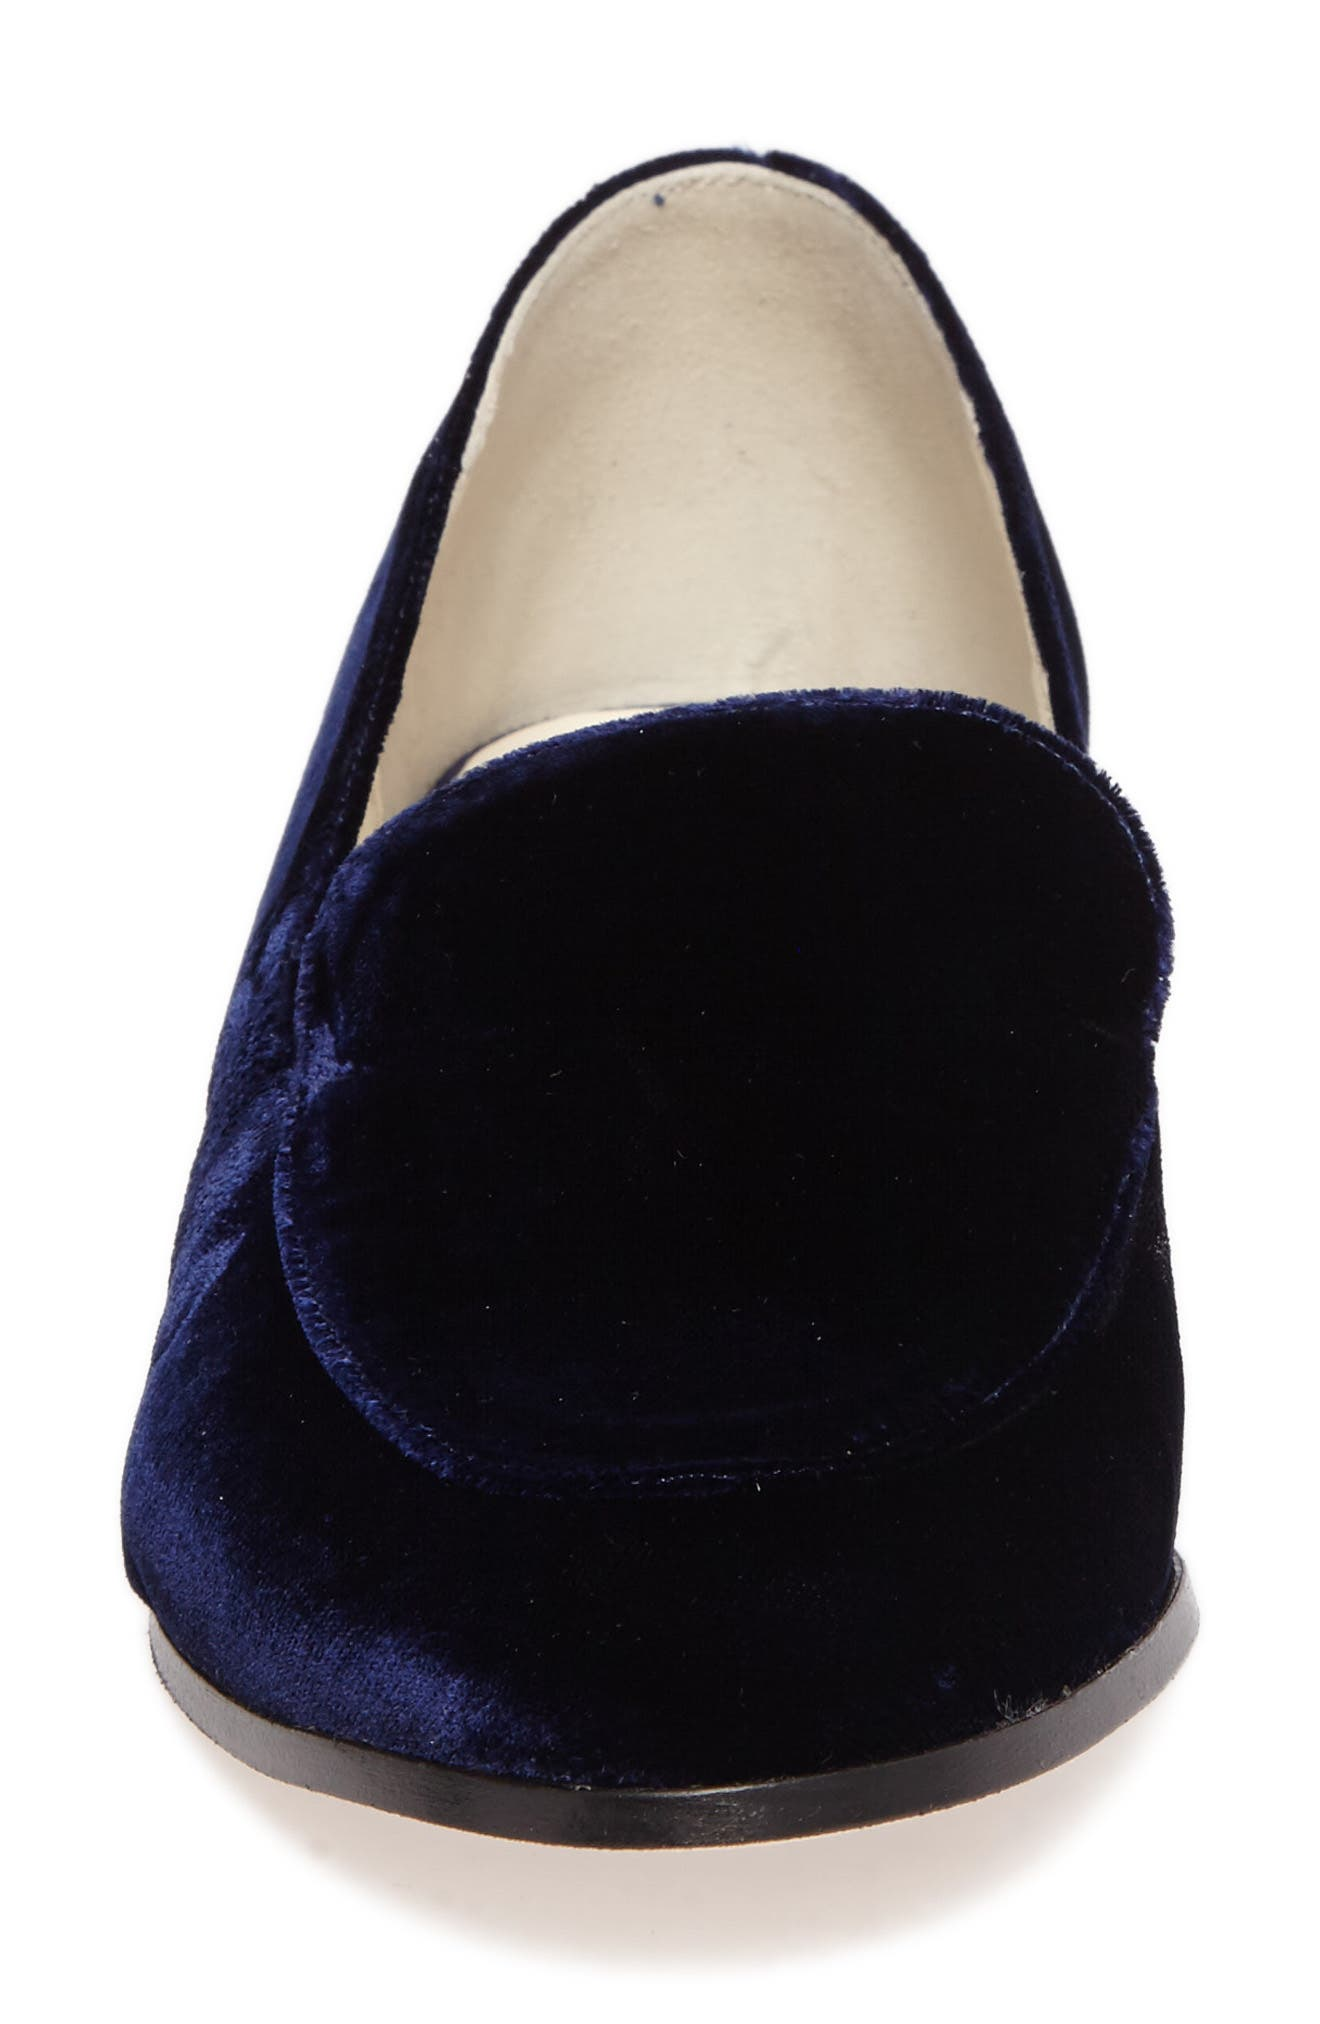 Bettye by Bettye Muller Regency Loafer,                             Alternate thumbnail 4, color,                             410